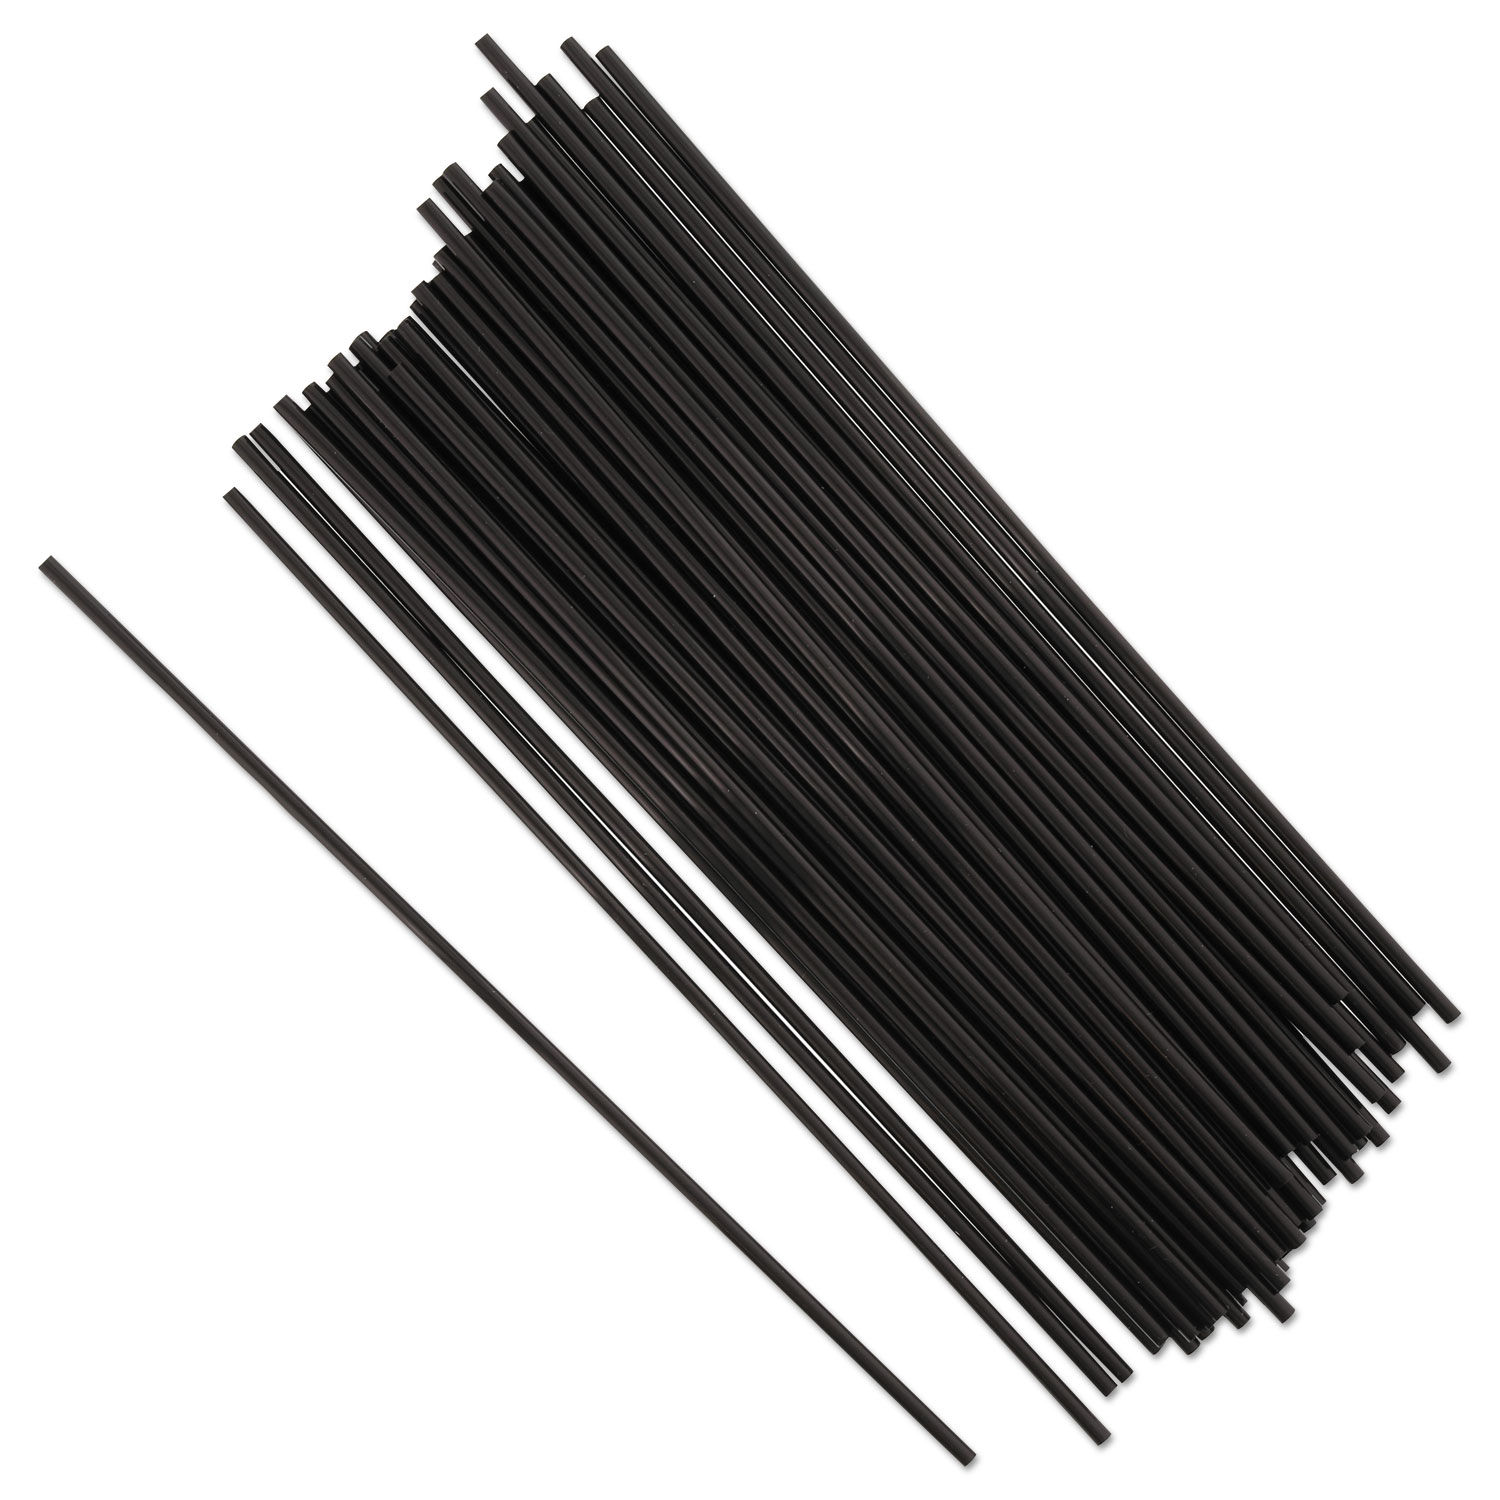 3900-38 STIR STICKS BLACK PLASTIC 8